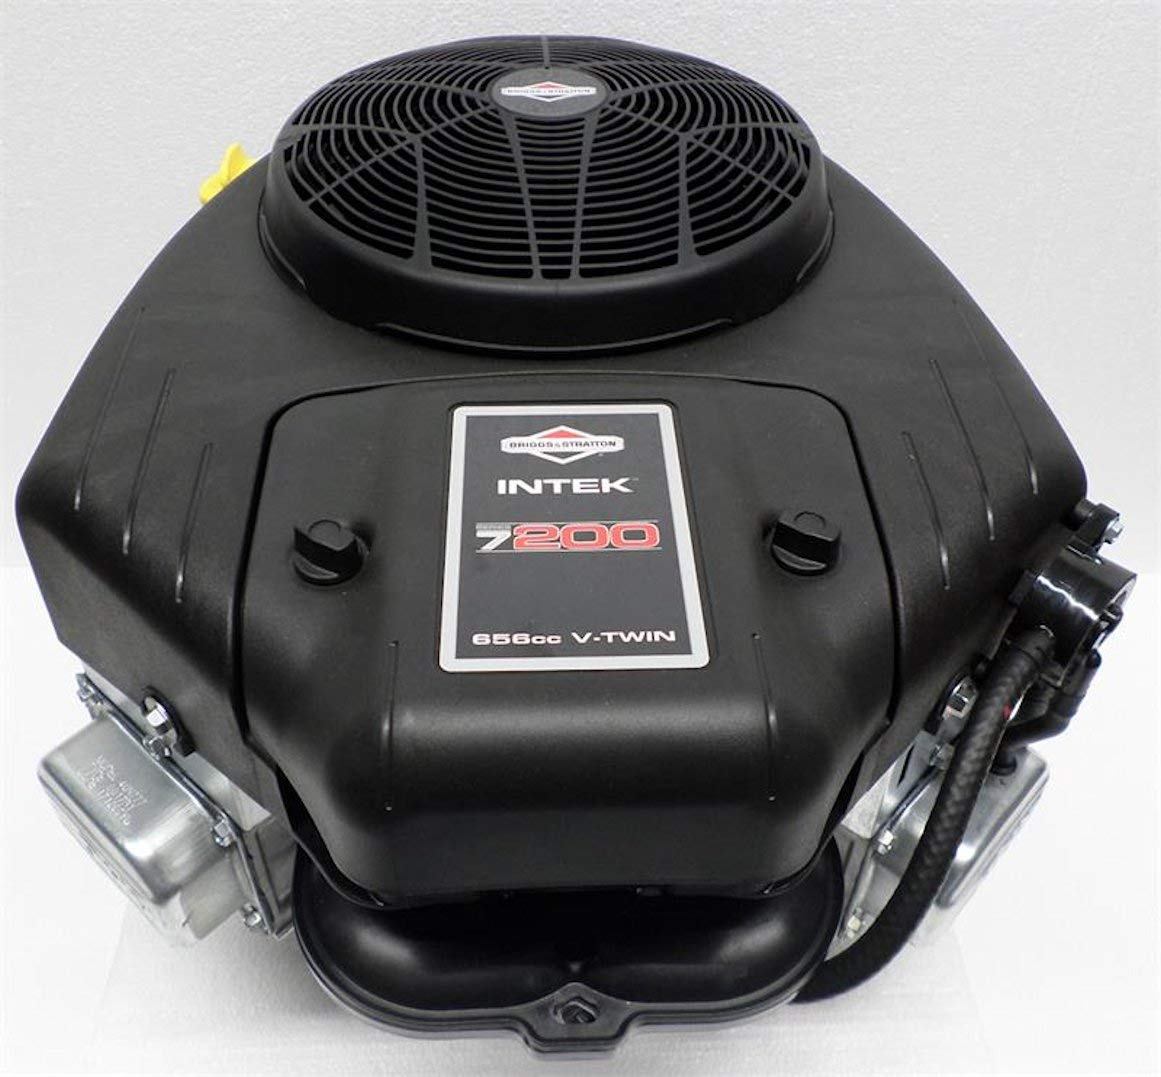 Briggs & Stratton 7-200 Series 20 HP 656cc 1